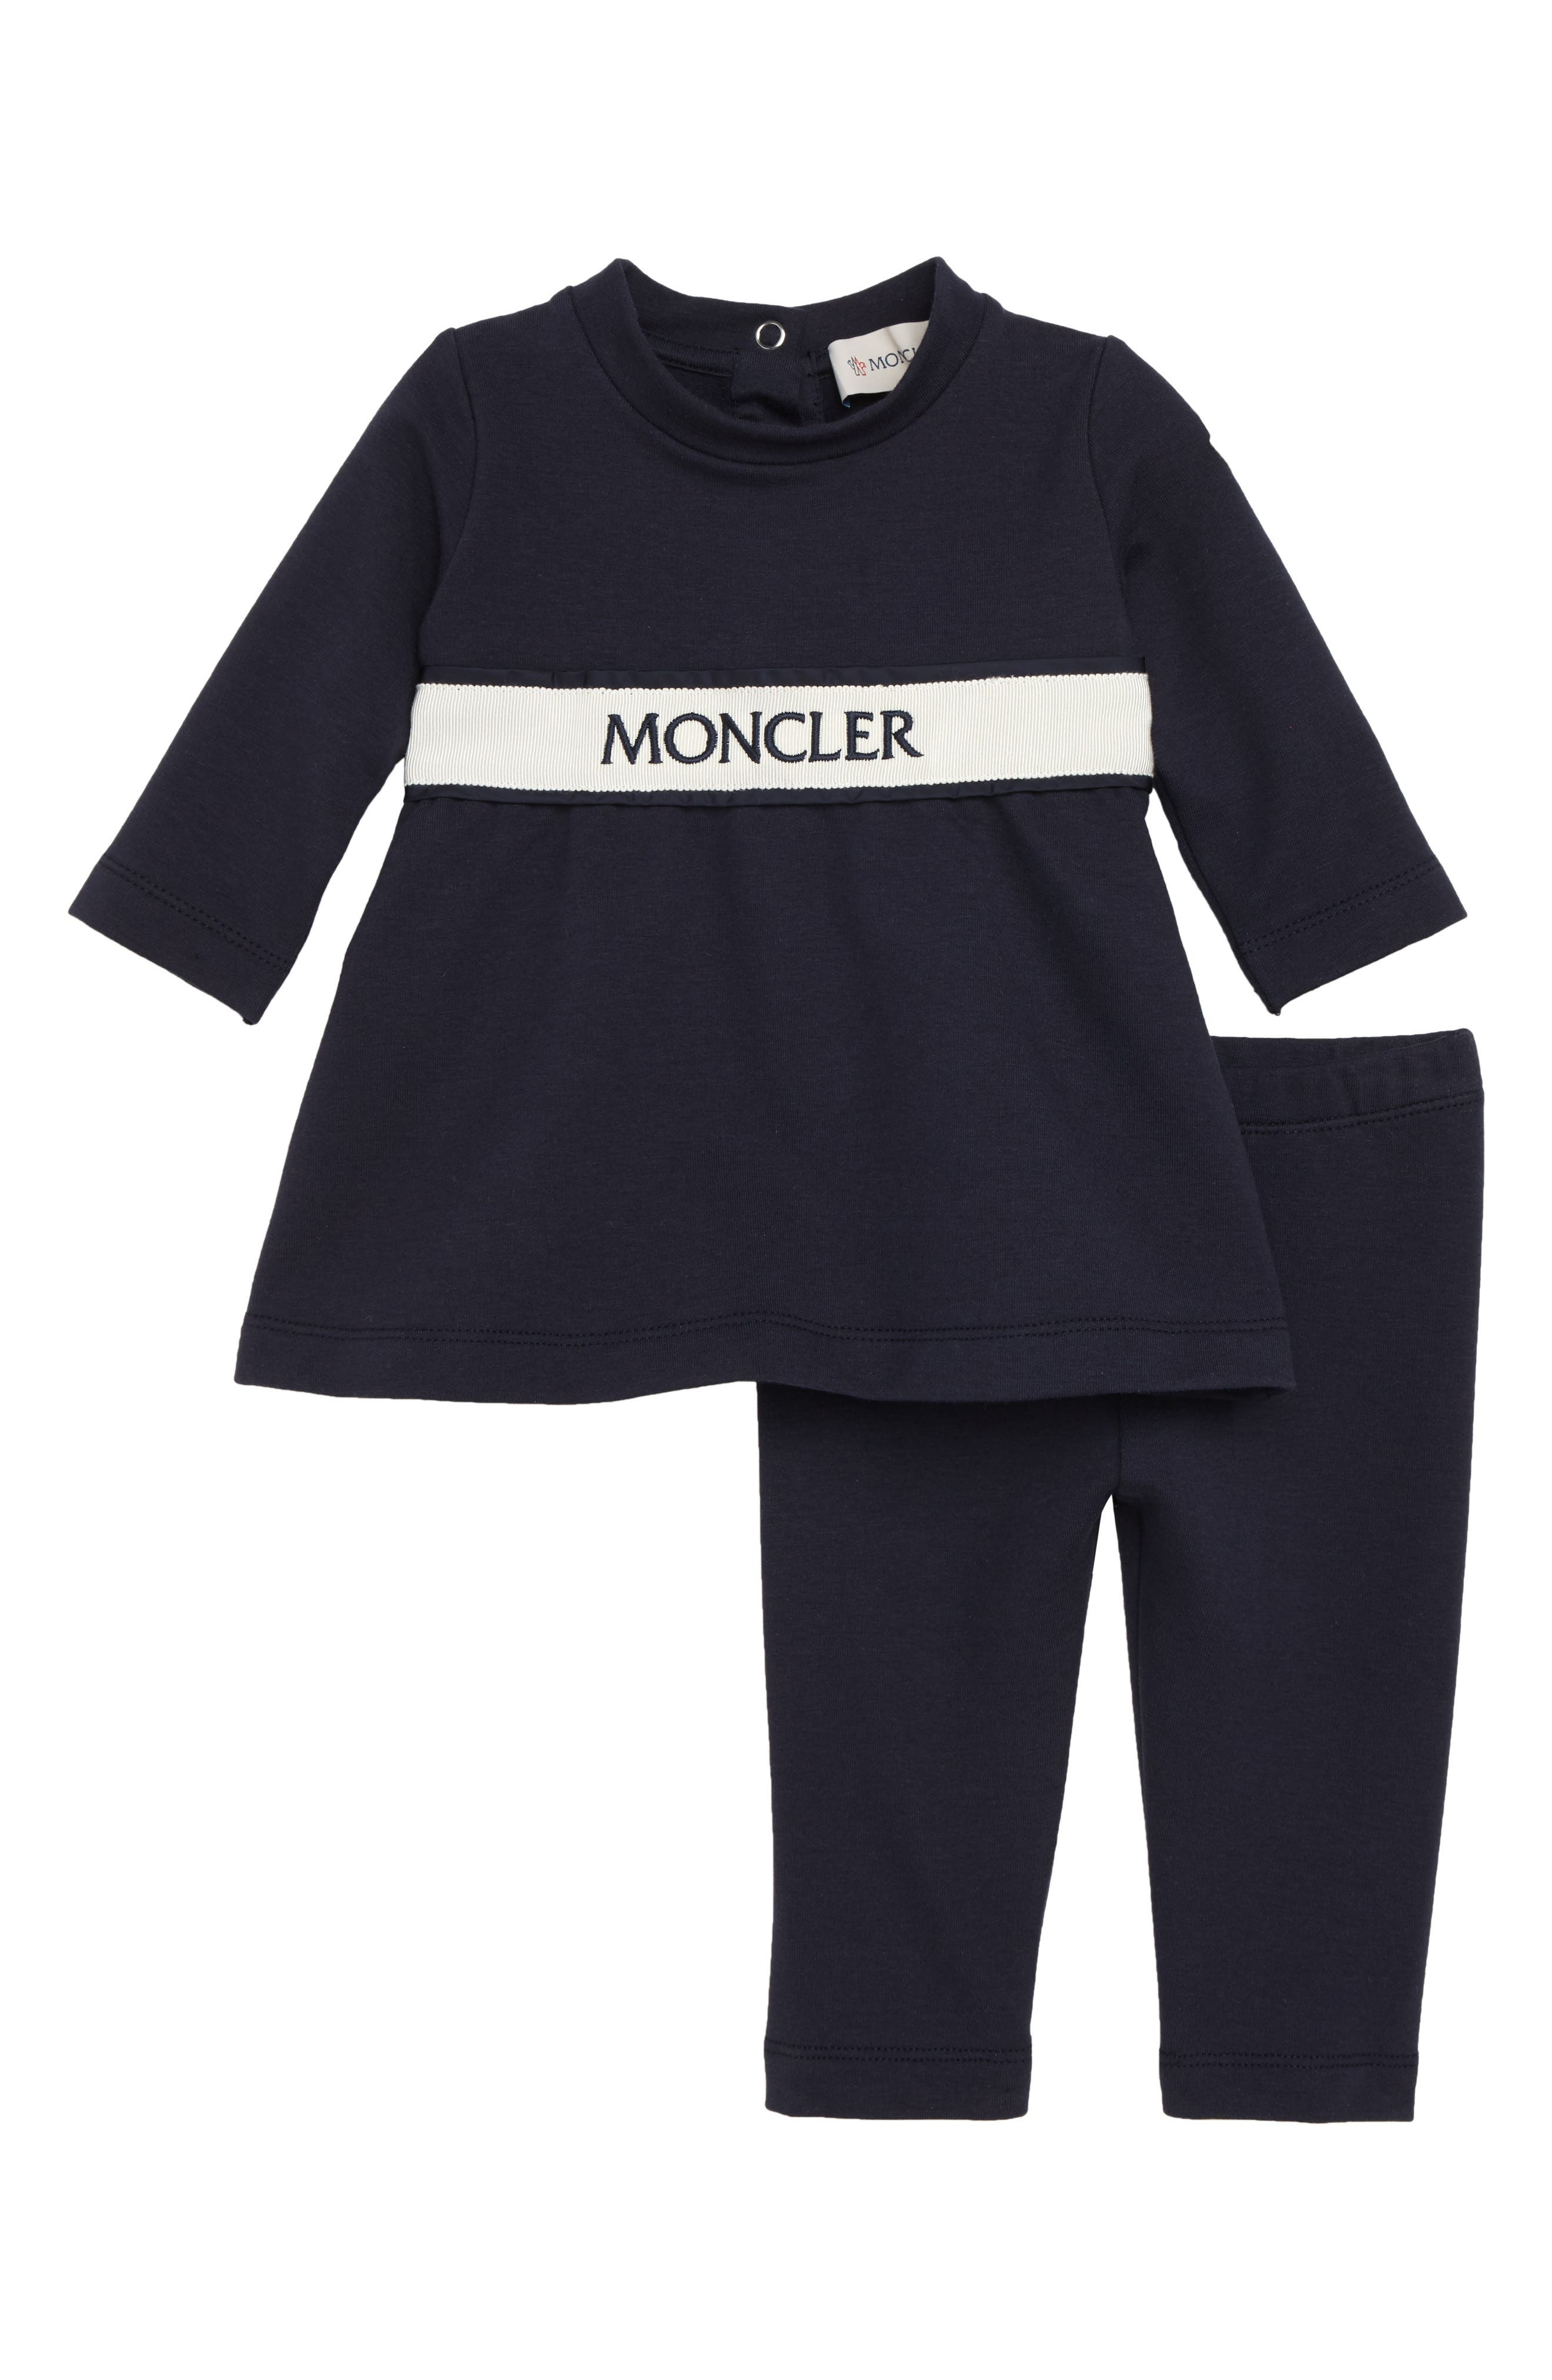 MONCLER, Dress & Leggings Set, Main thumbnail 1, color, NAVY